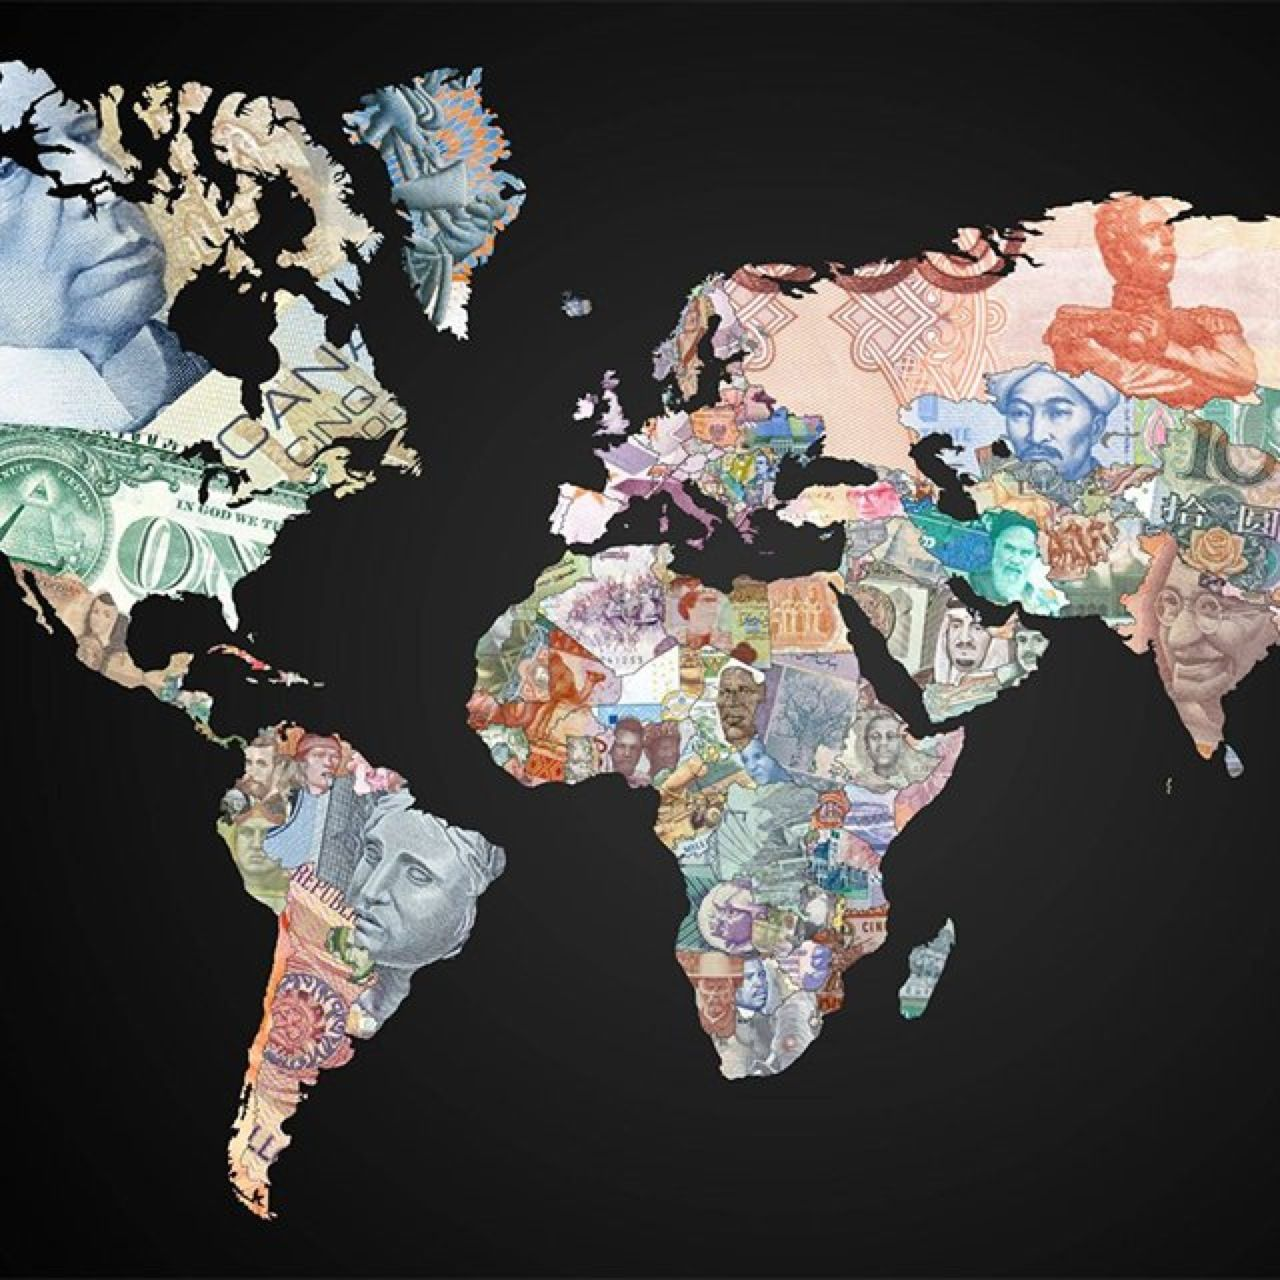 Map made out of currency.